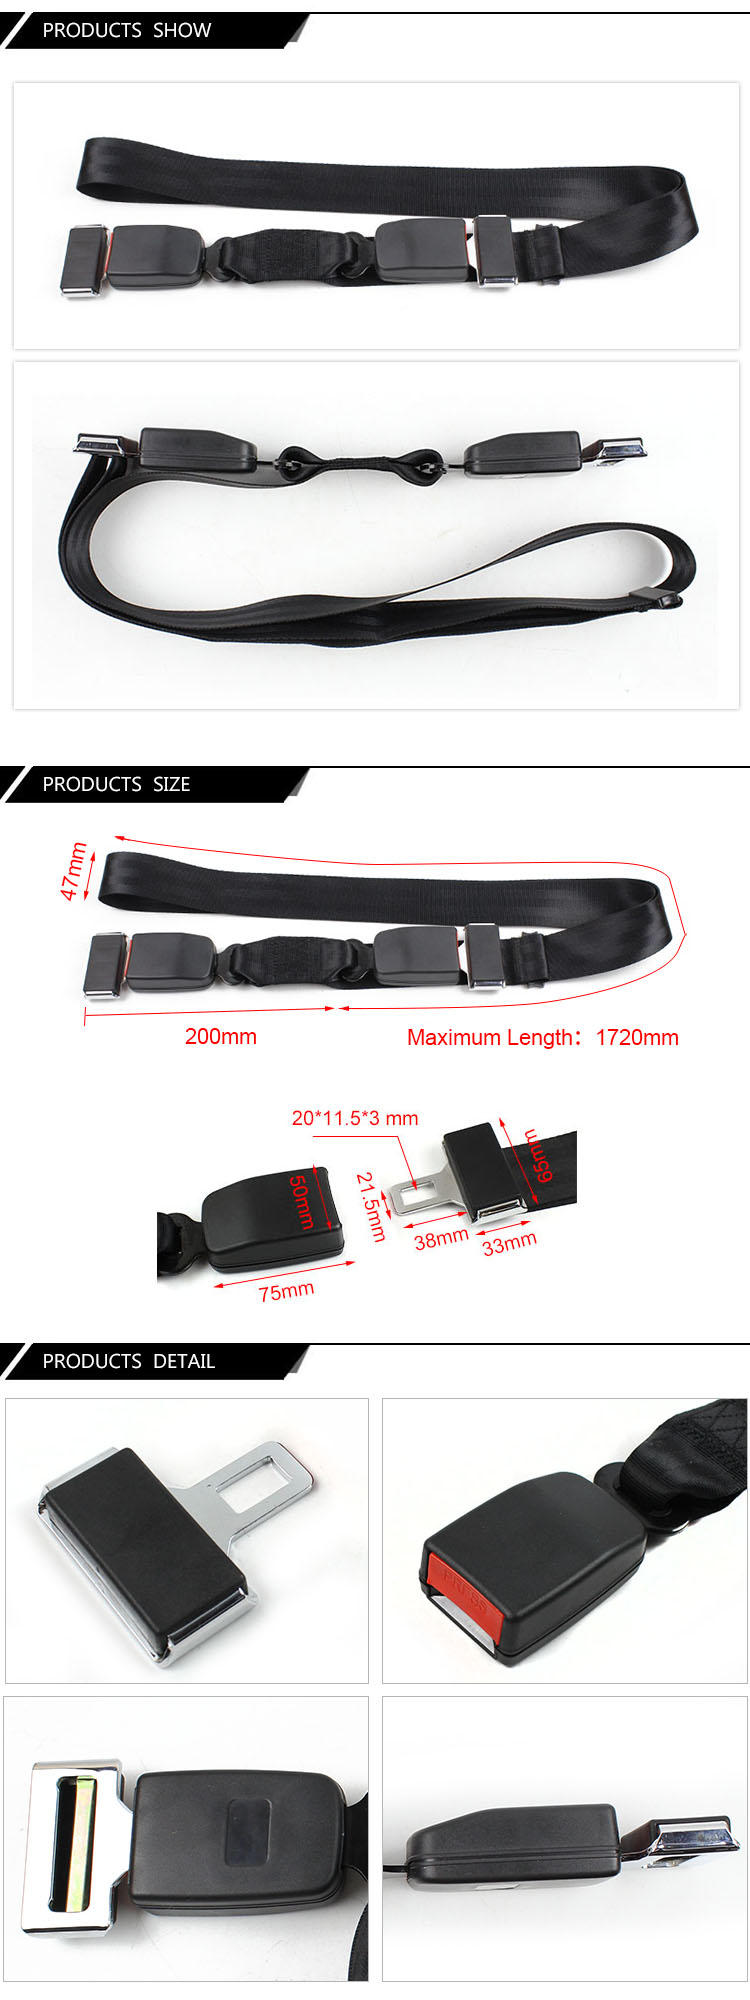 Fea017 Adjustable Seat Belt for Pregnant Woman